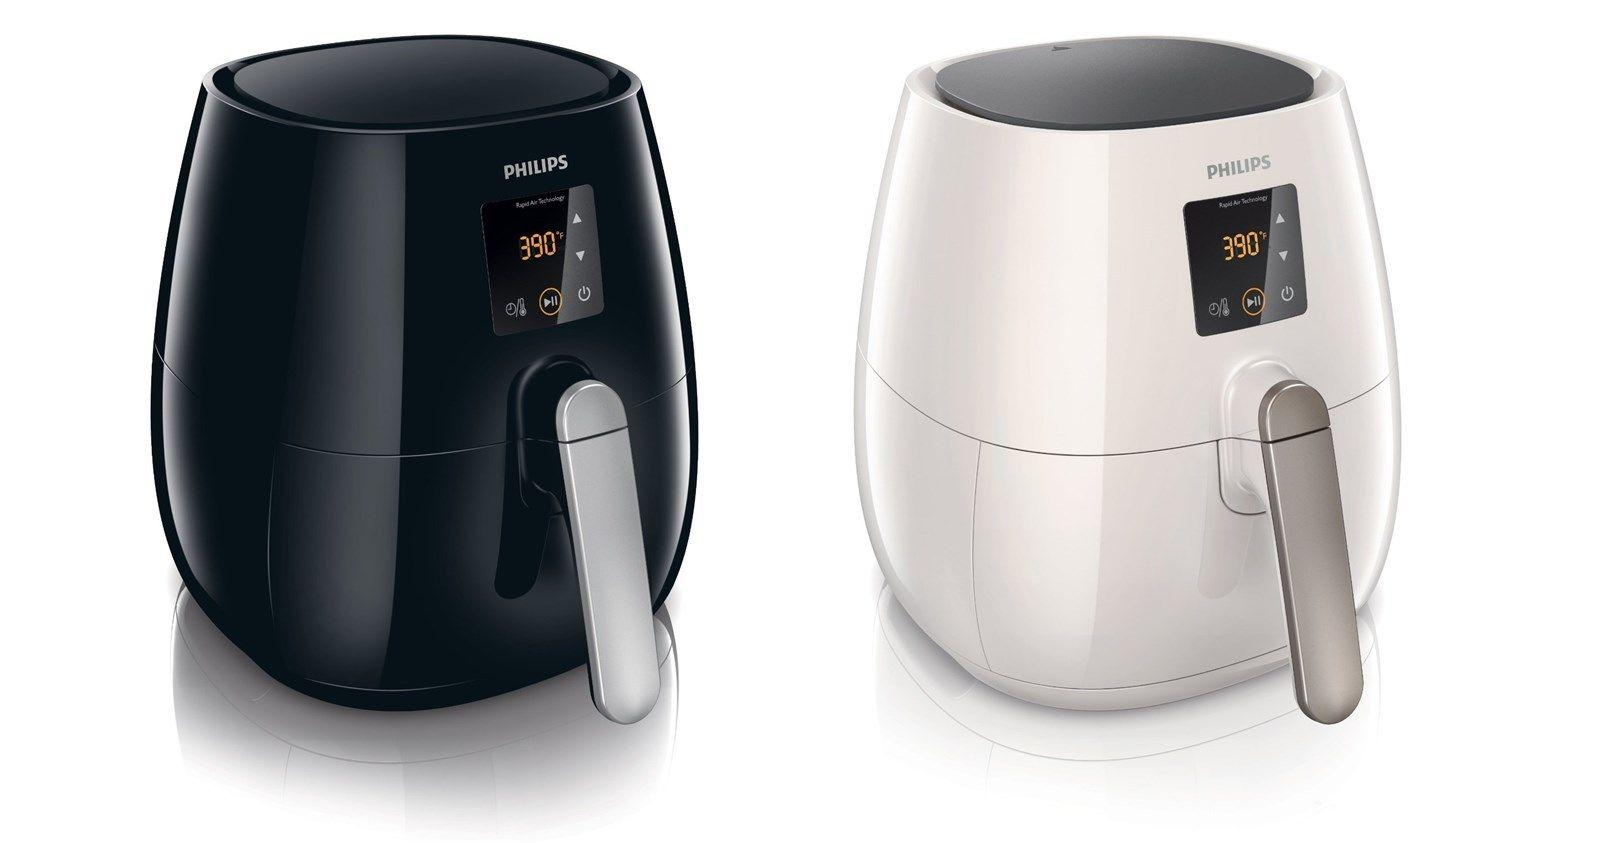 Philips Viva Digital Air Fryer Manufacturer refurbished